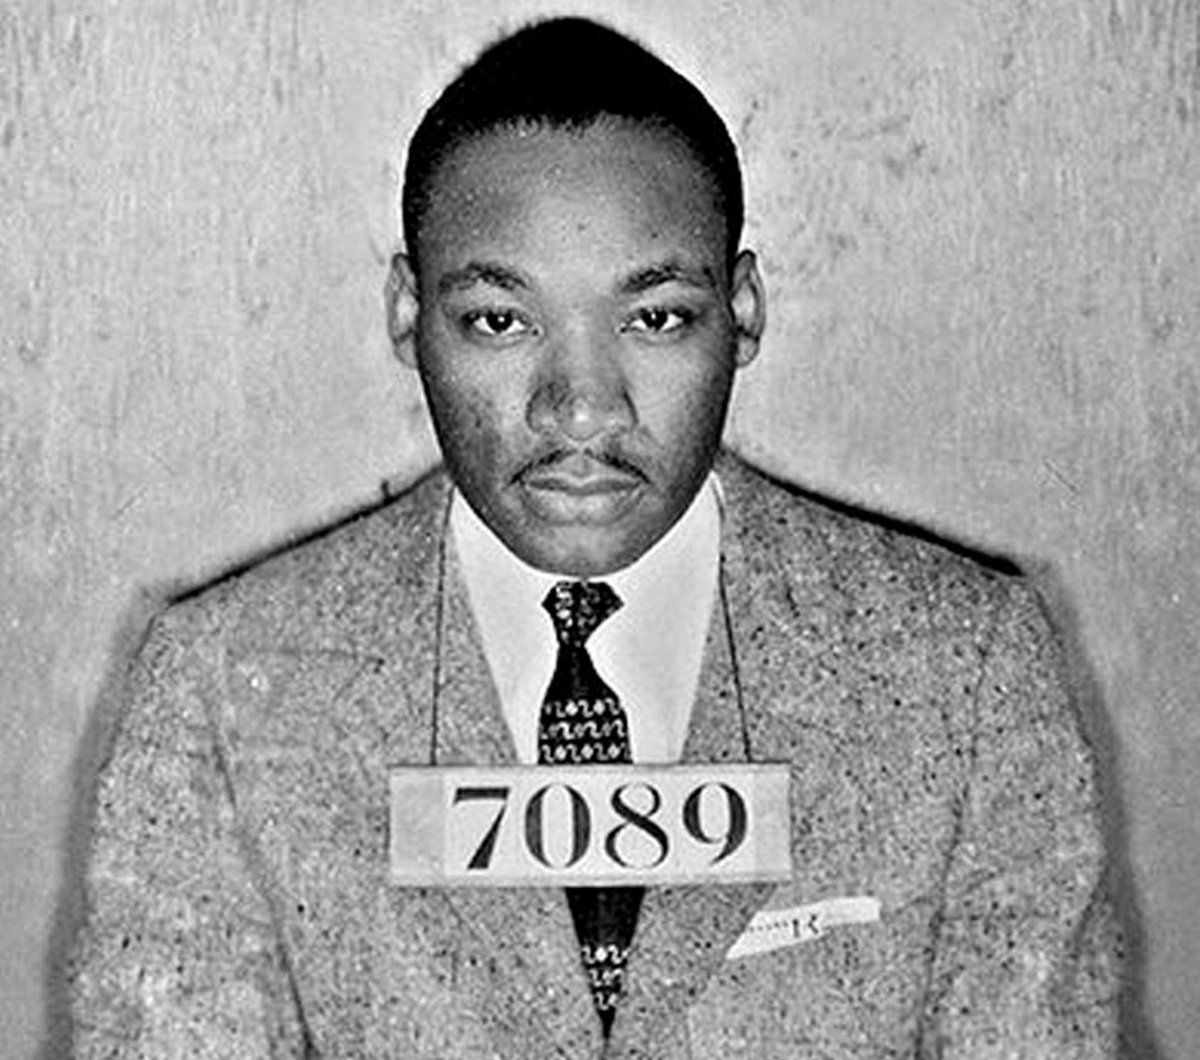 martin luther king jr was born january 15 1929�here